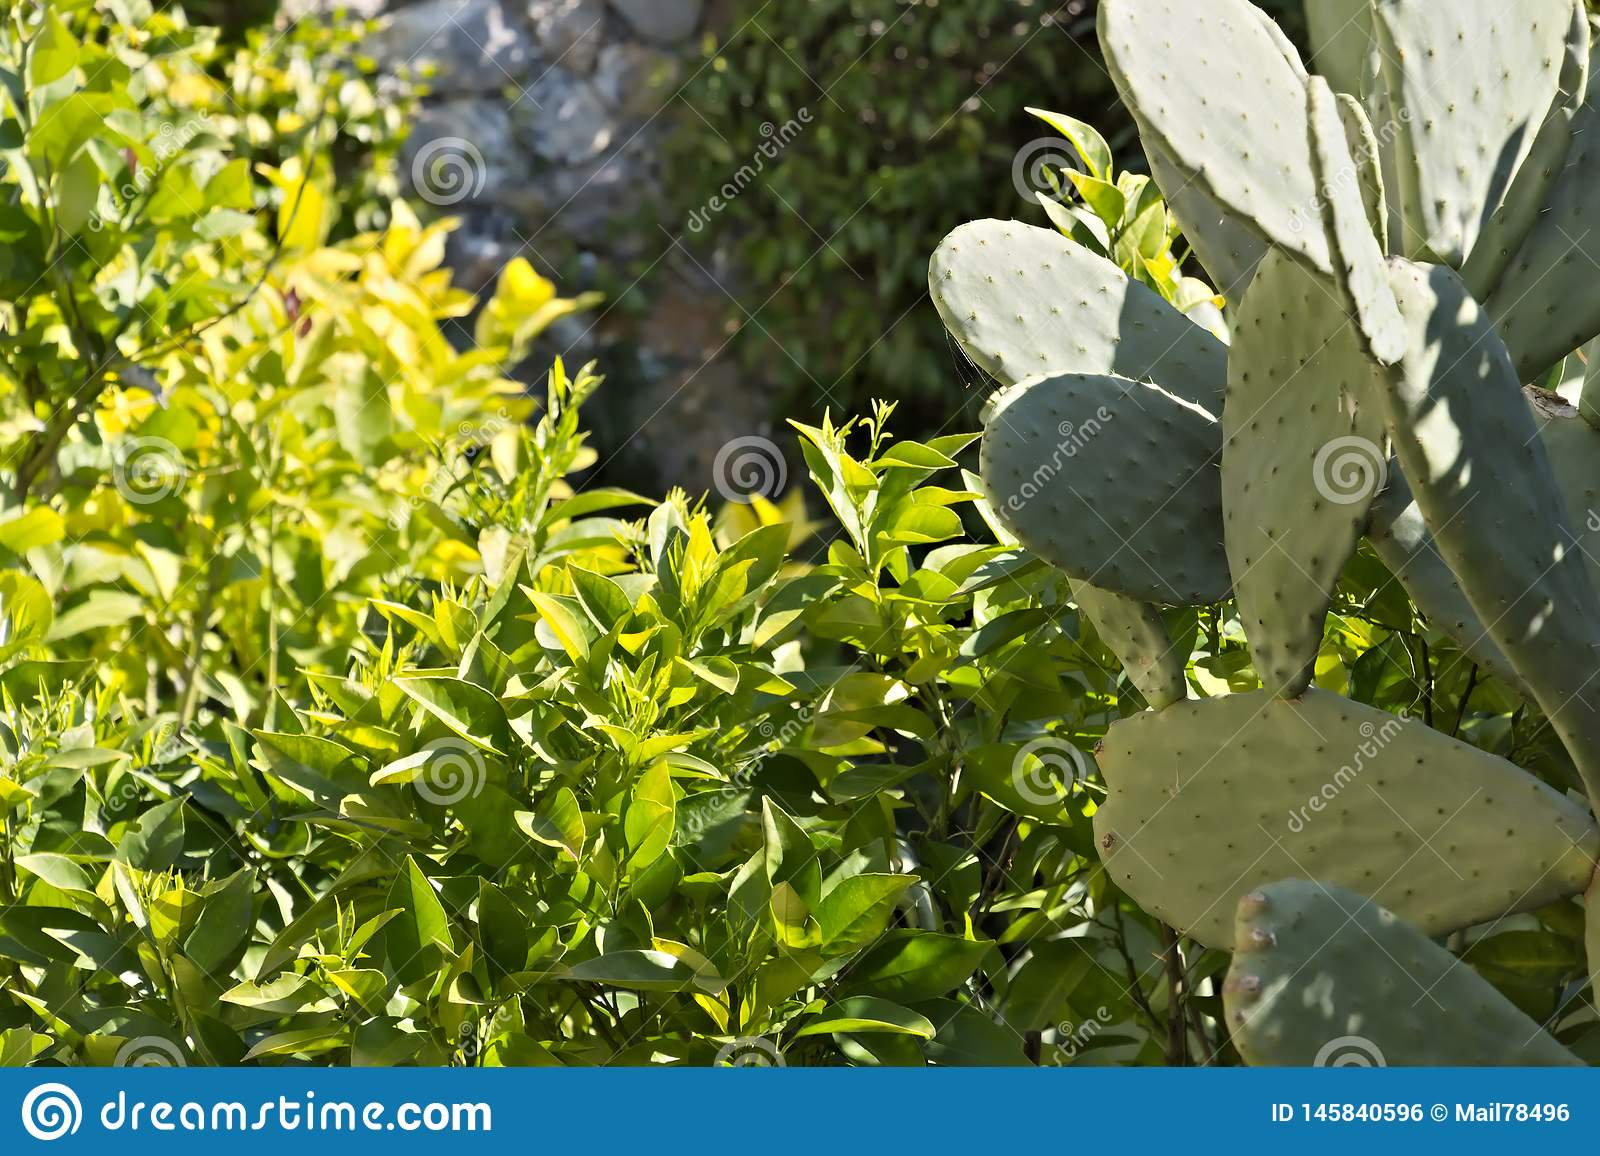 Lemon plant with prickly pear cactus